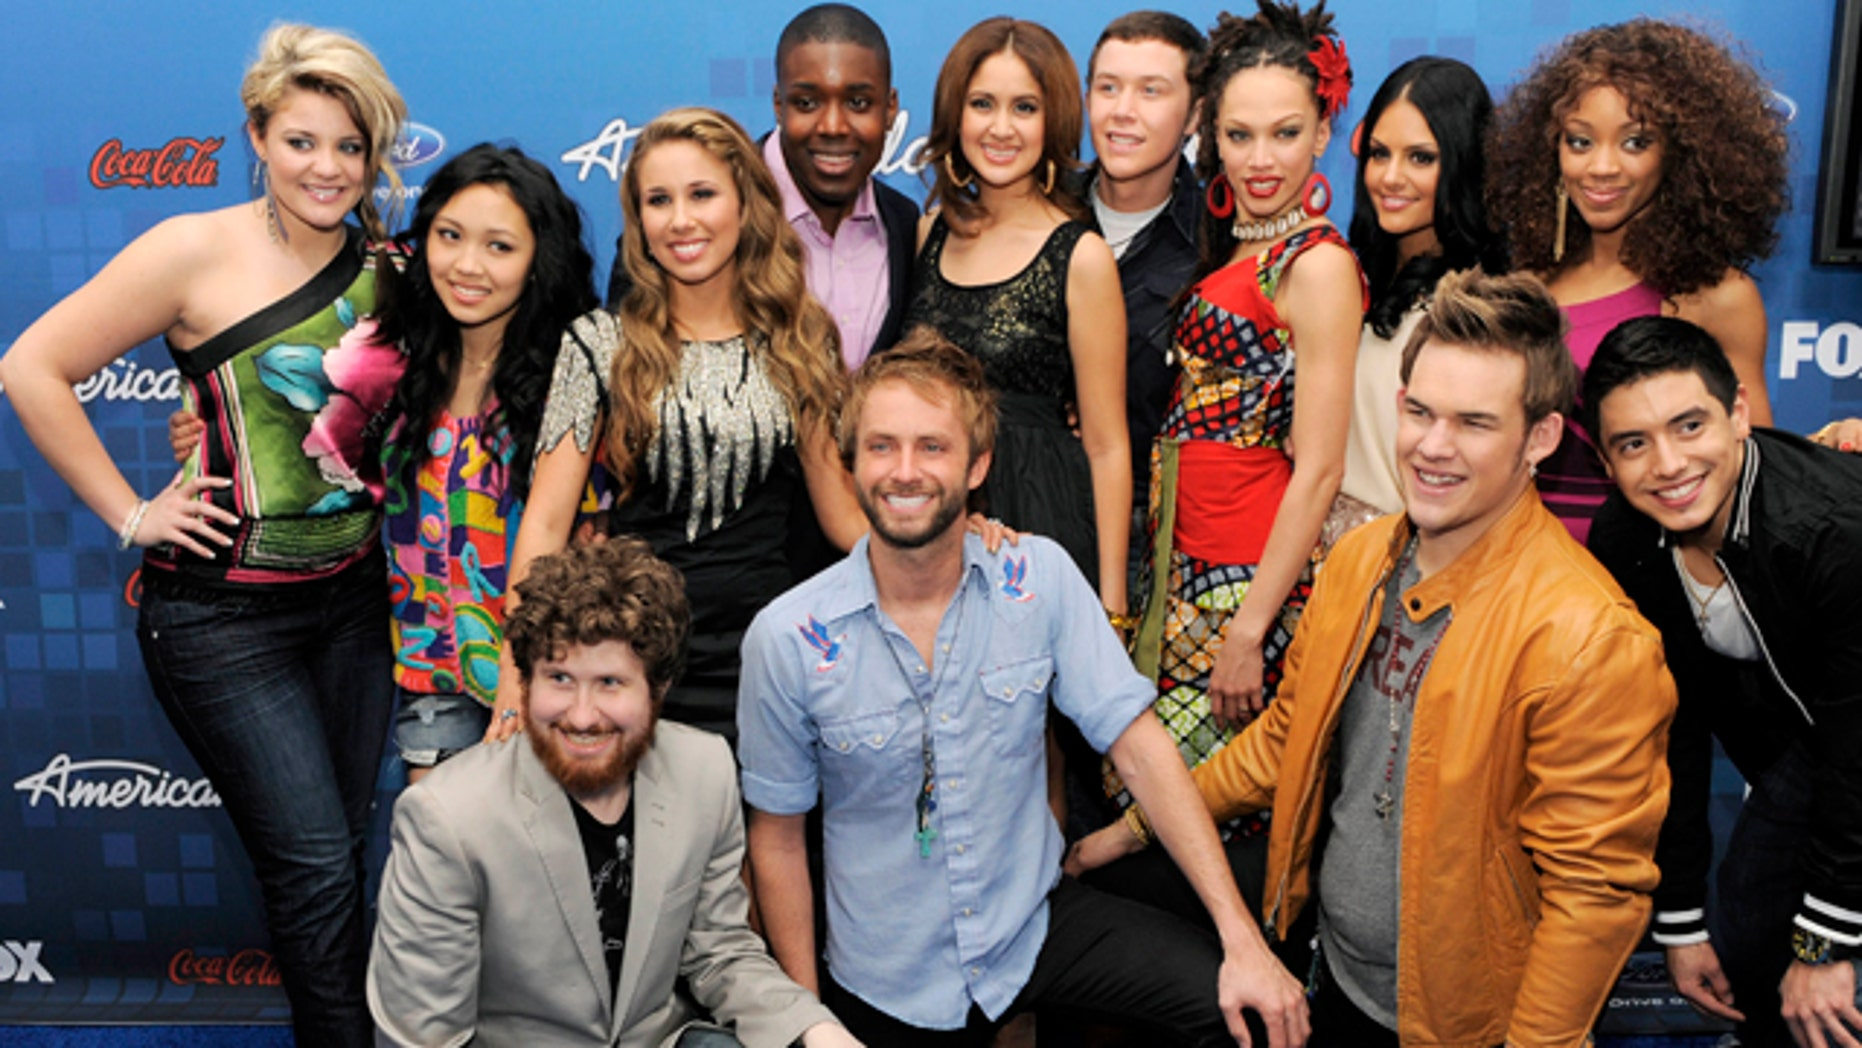 """March 3, 2011: """"American Idol"""" finalists pose together at the Finalists Party in Los Angeles. In the front row from left to right are Casey Abrams, Paul McDonald, James Durbin and Stefano Langone. In the back row from left to right are Lauren Alaina, Thia Megia, Haley Reinhart, Jacob Lusk, Karen Rodriguez, Scotty McCreery, Naima Adedapo, Pia Toscano and Ashthon Jones."""